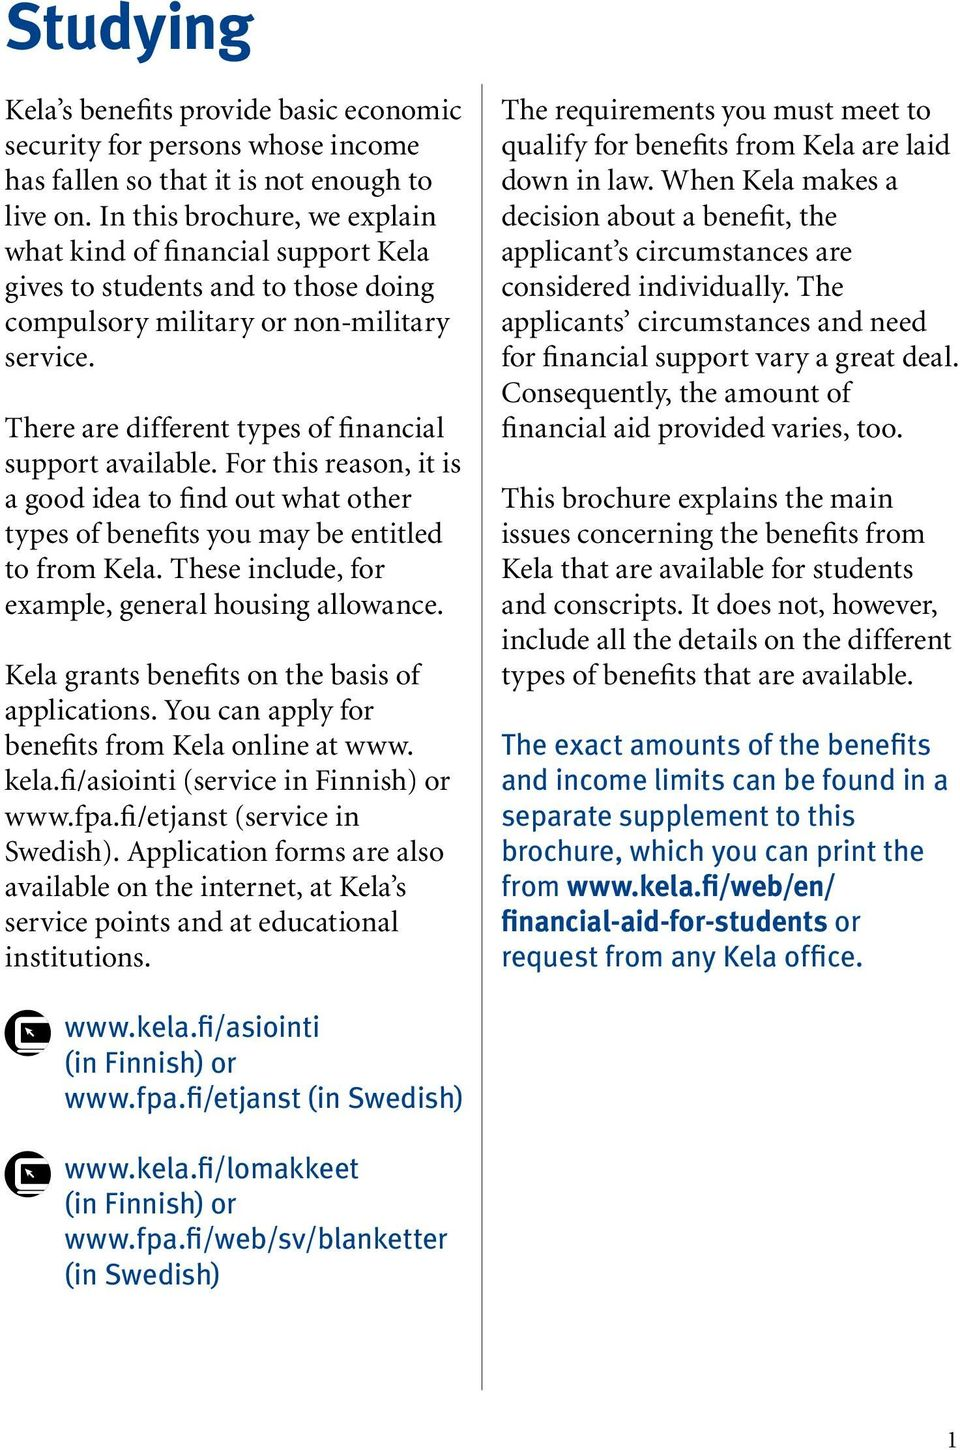 There are different types of financial support available. For this reason, it is a good idea to find out what other types of benefits you may be entitled to from Kela.